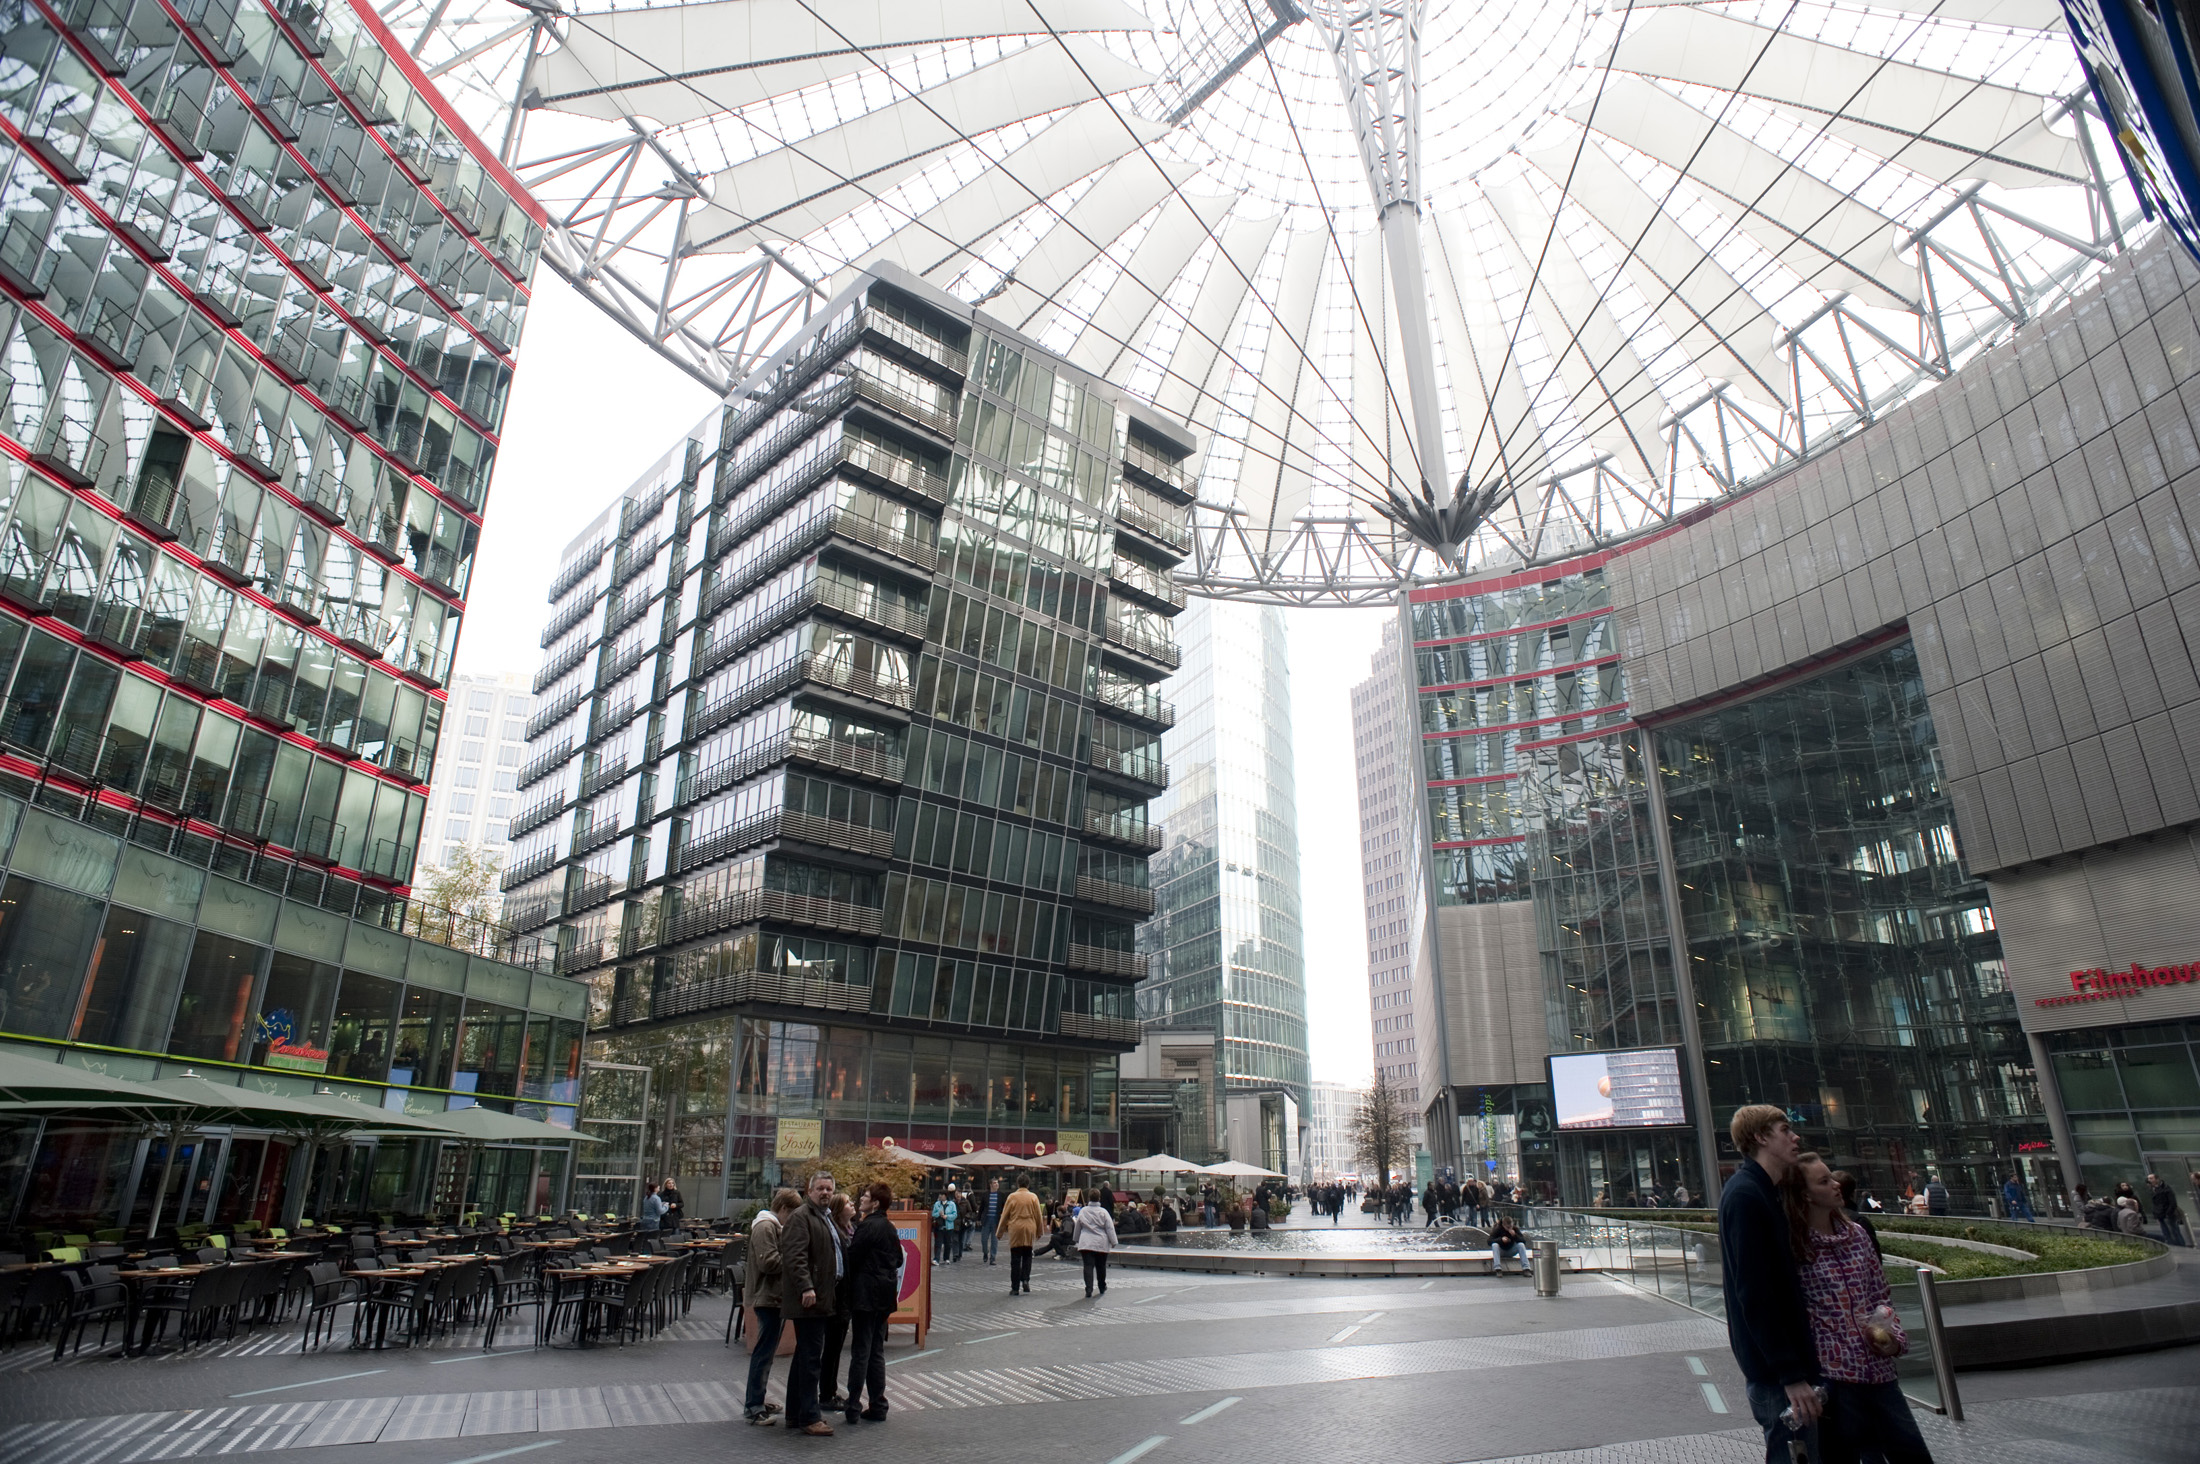 Free Stock photo of Interior of the Sony centre ...